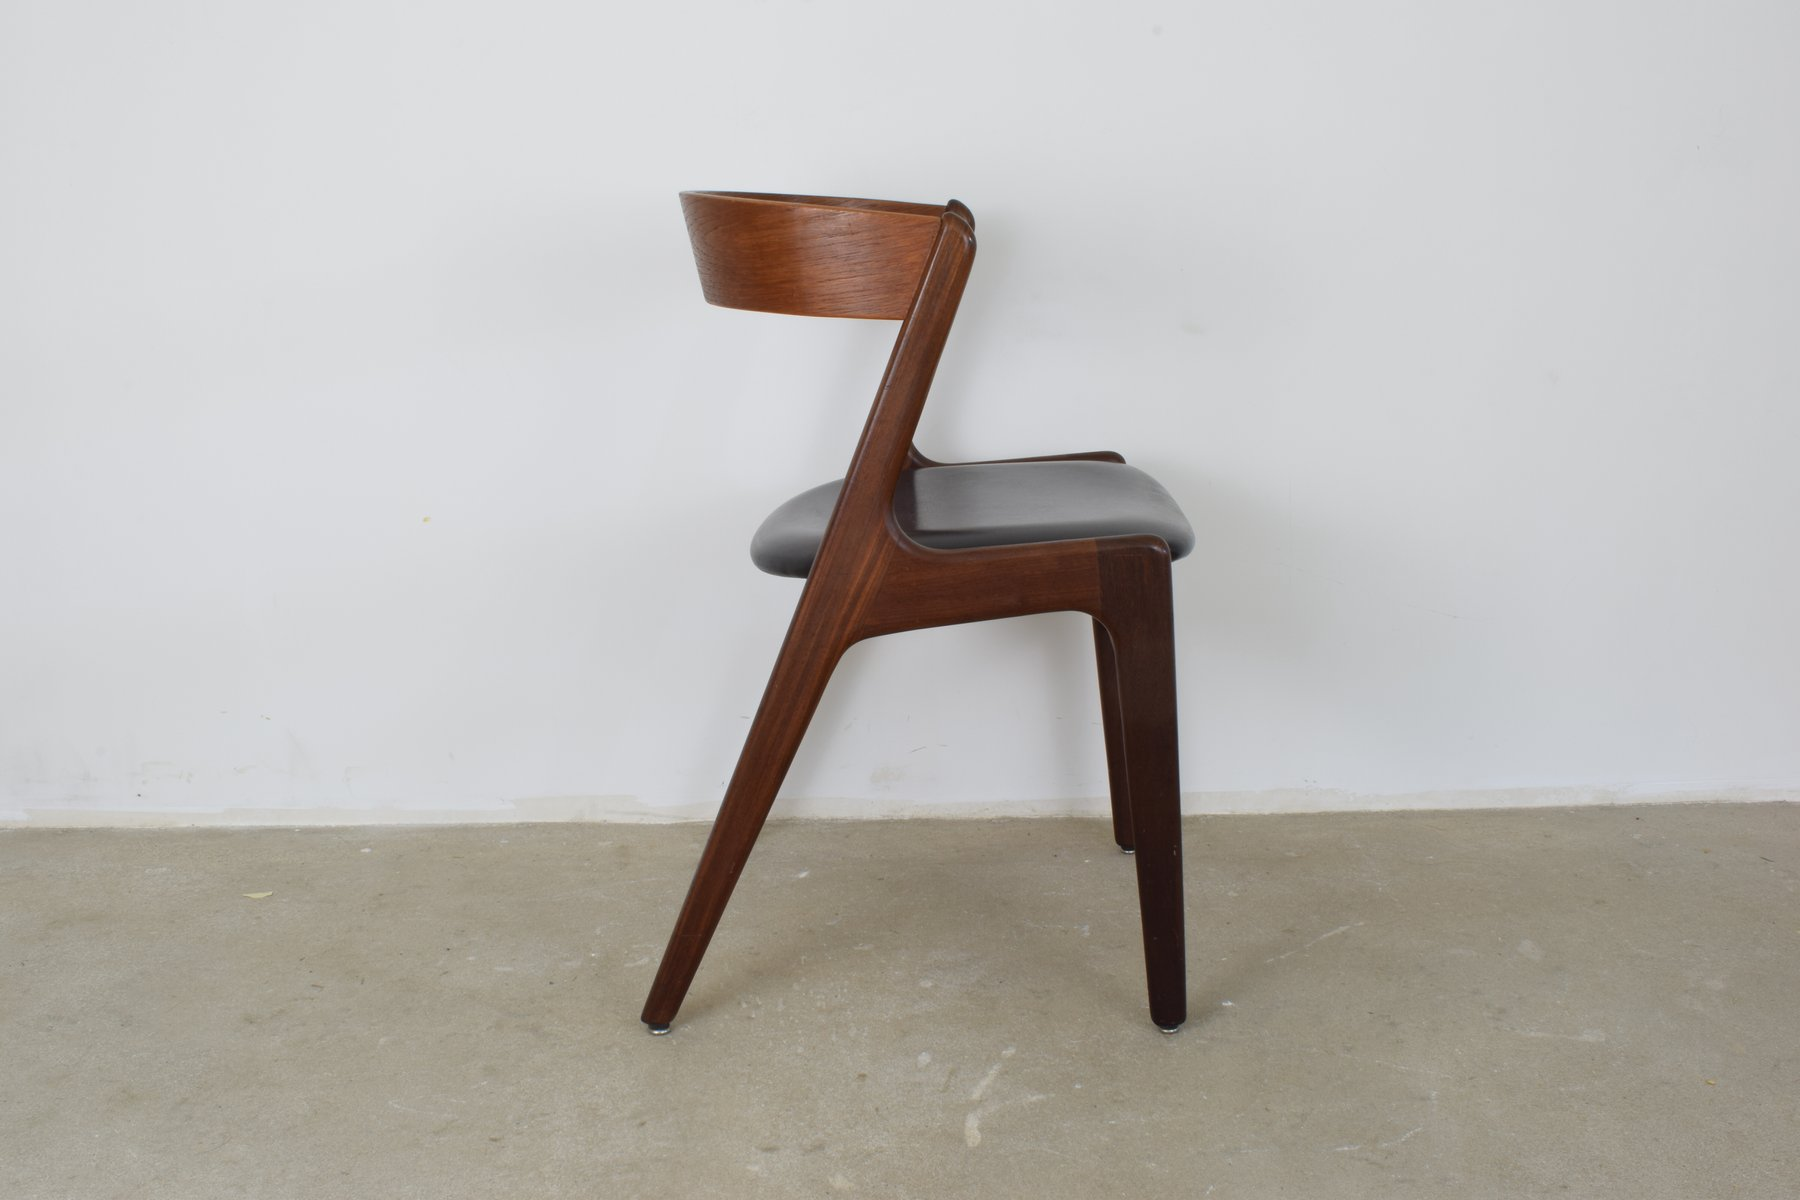 Vintage Danish Fire Chair By Kai Kristiansen For Schou Andersen